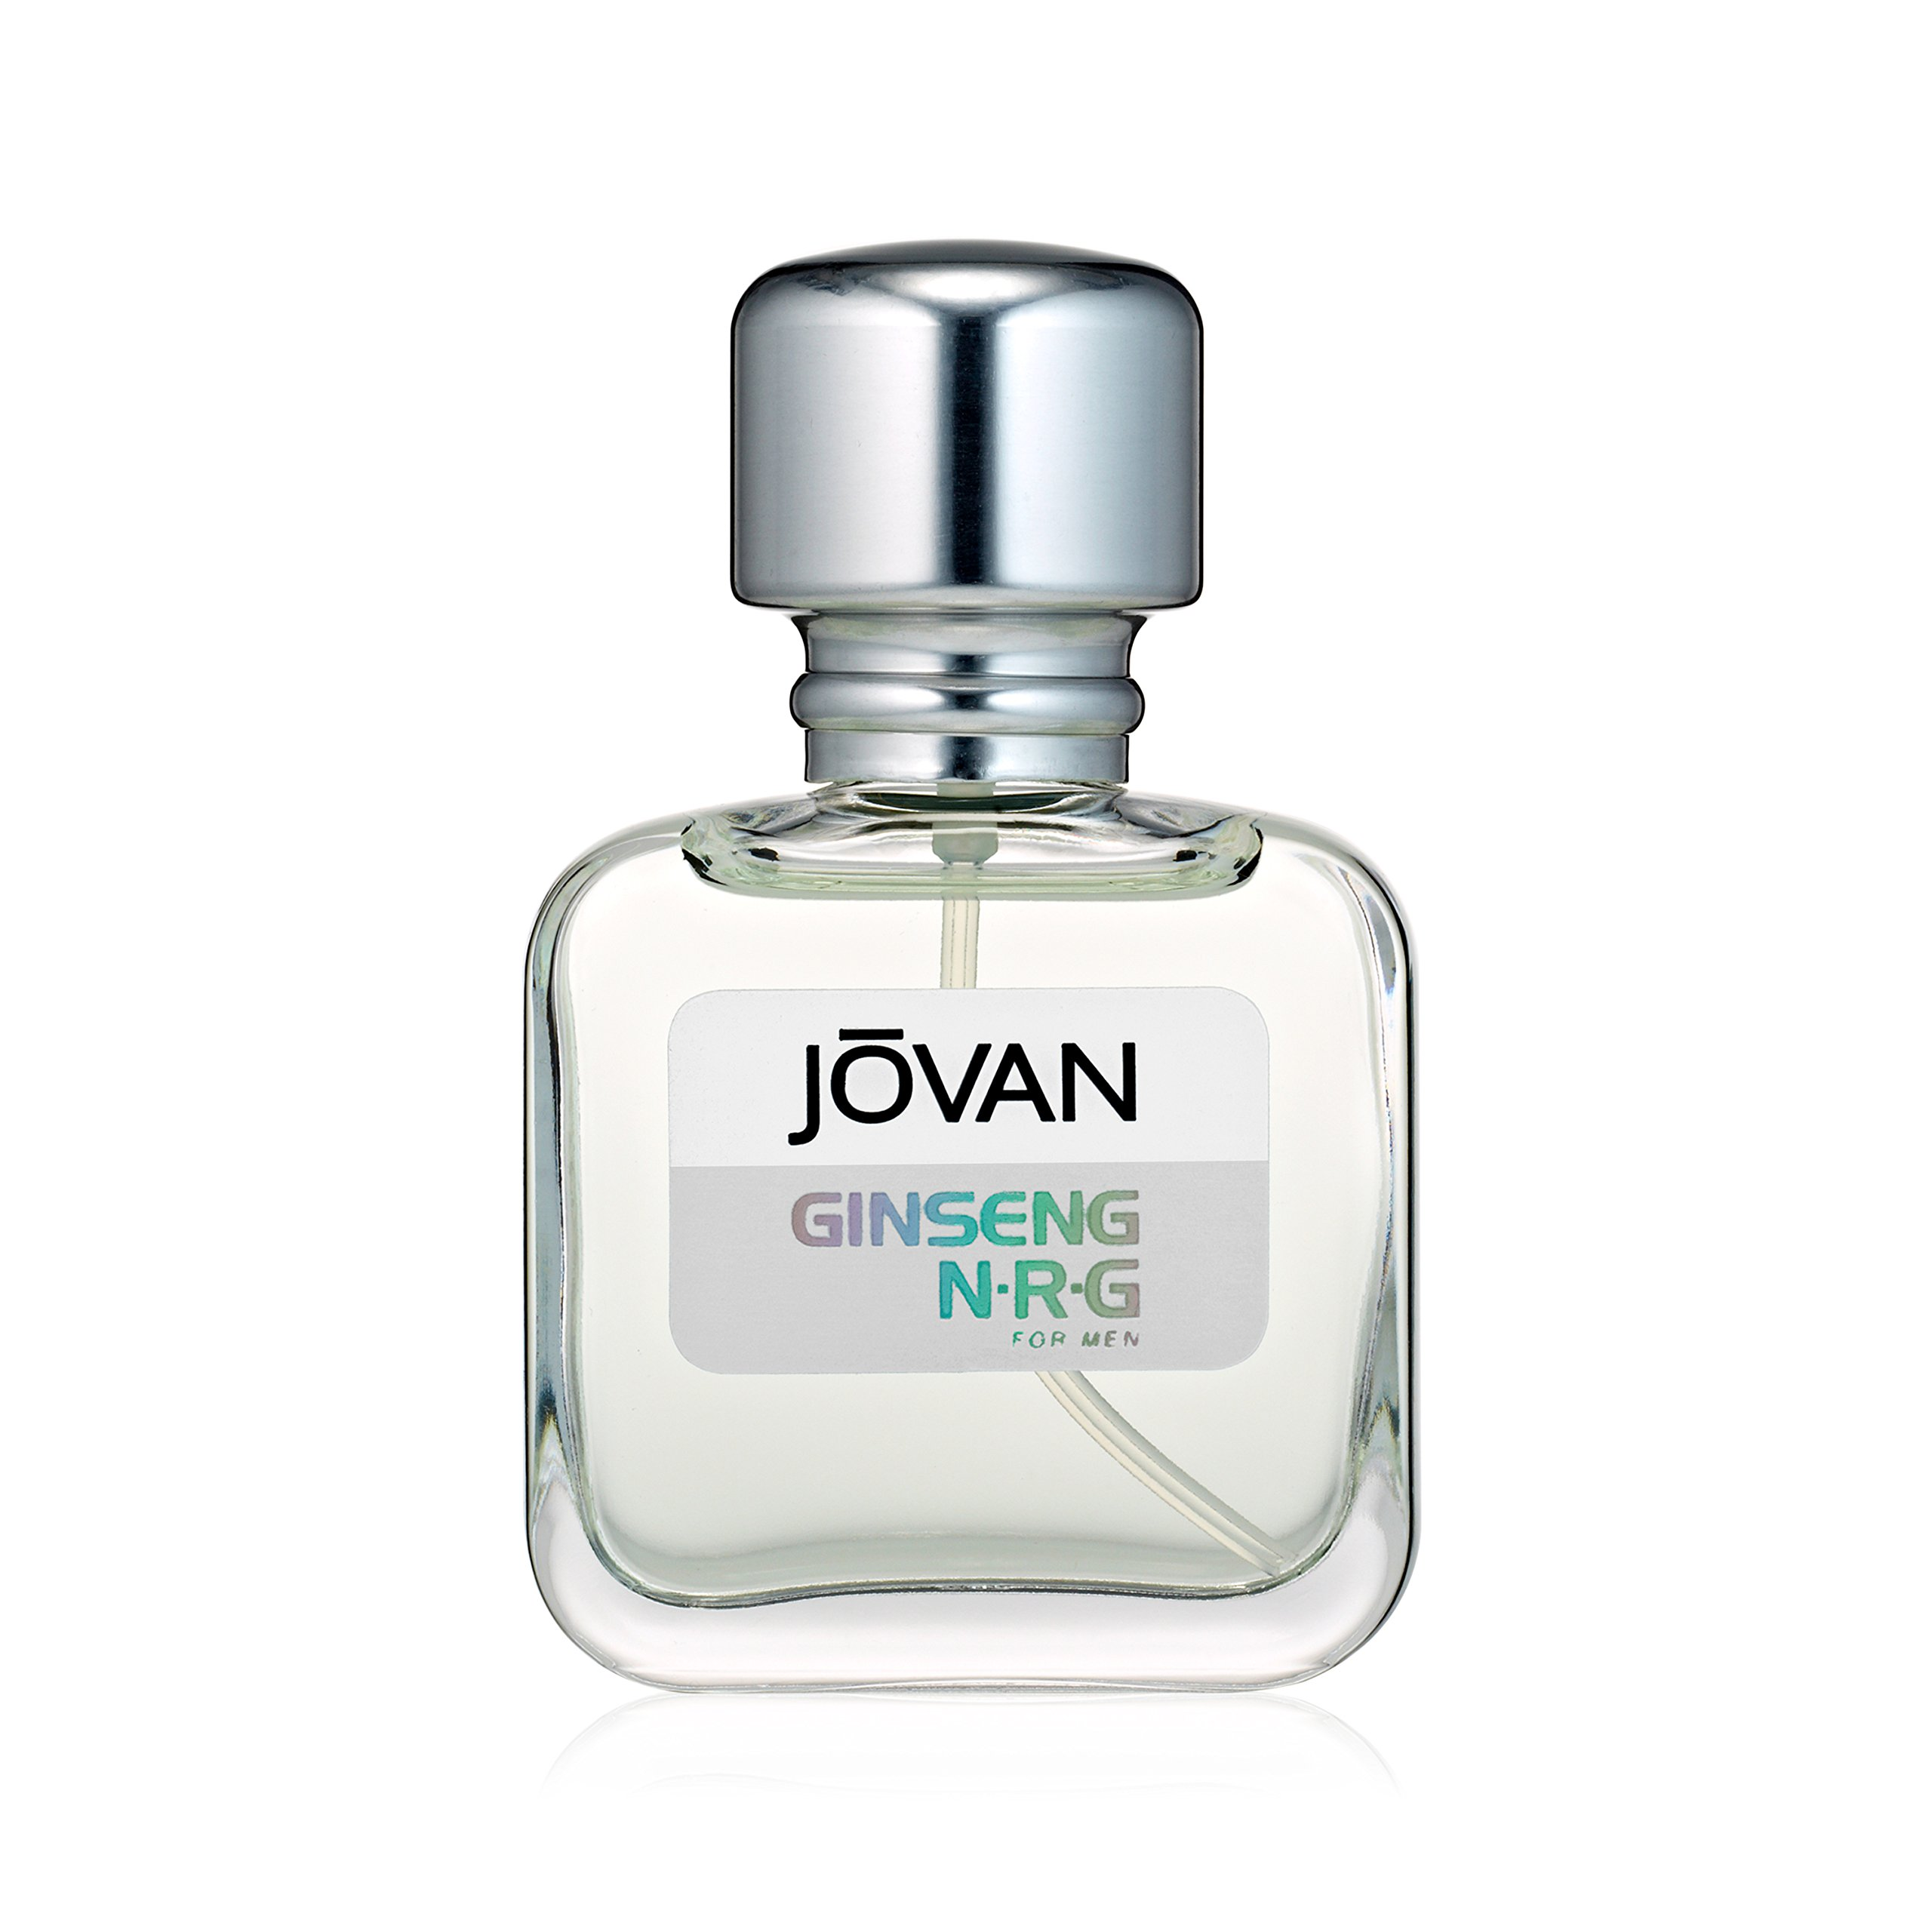 Jovan Ginseng N.R.G. Cologne Spray 1 Ounce